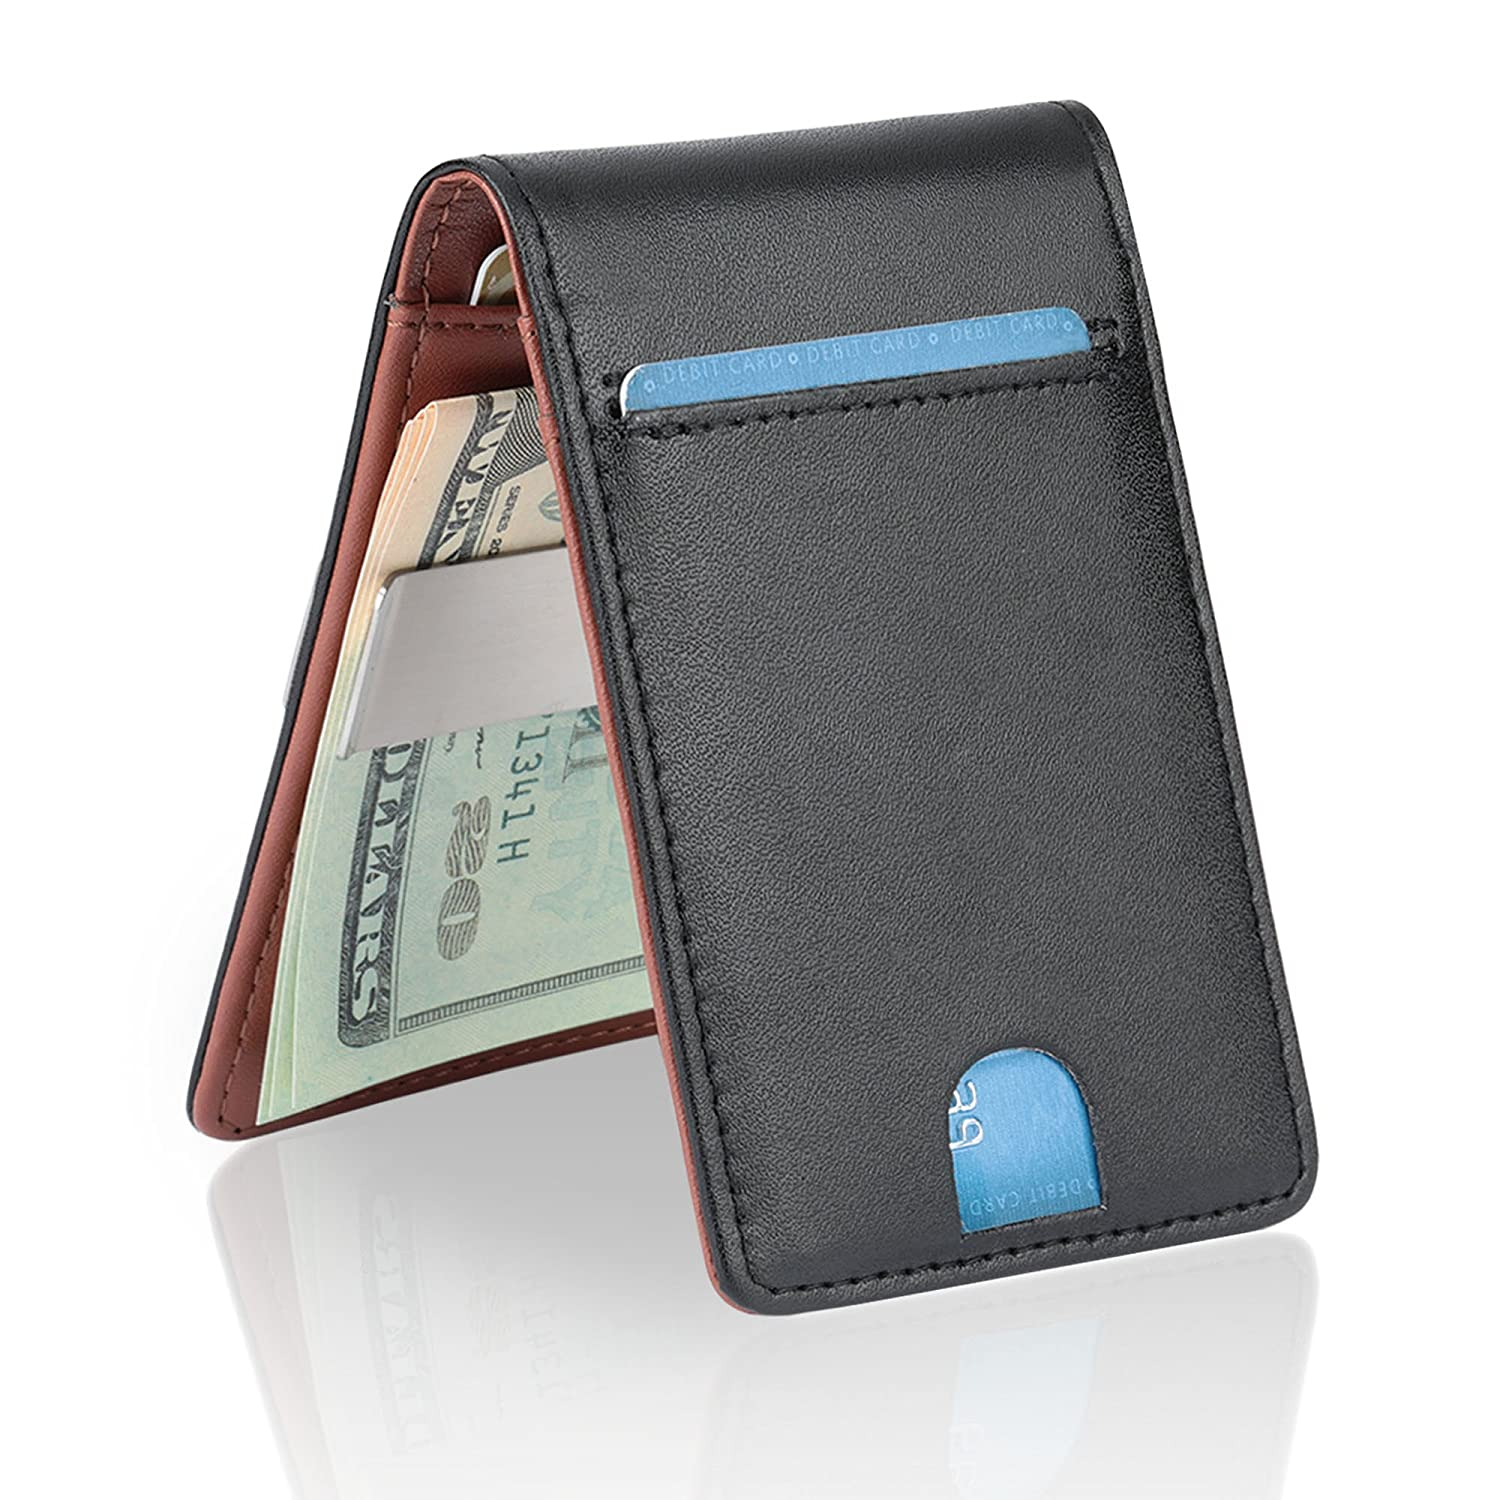 YOOMALL Leather Slim Money Clip Wallet for Men RFID Blocking Minimalist Card Holder